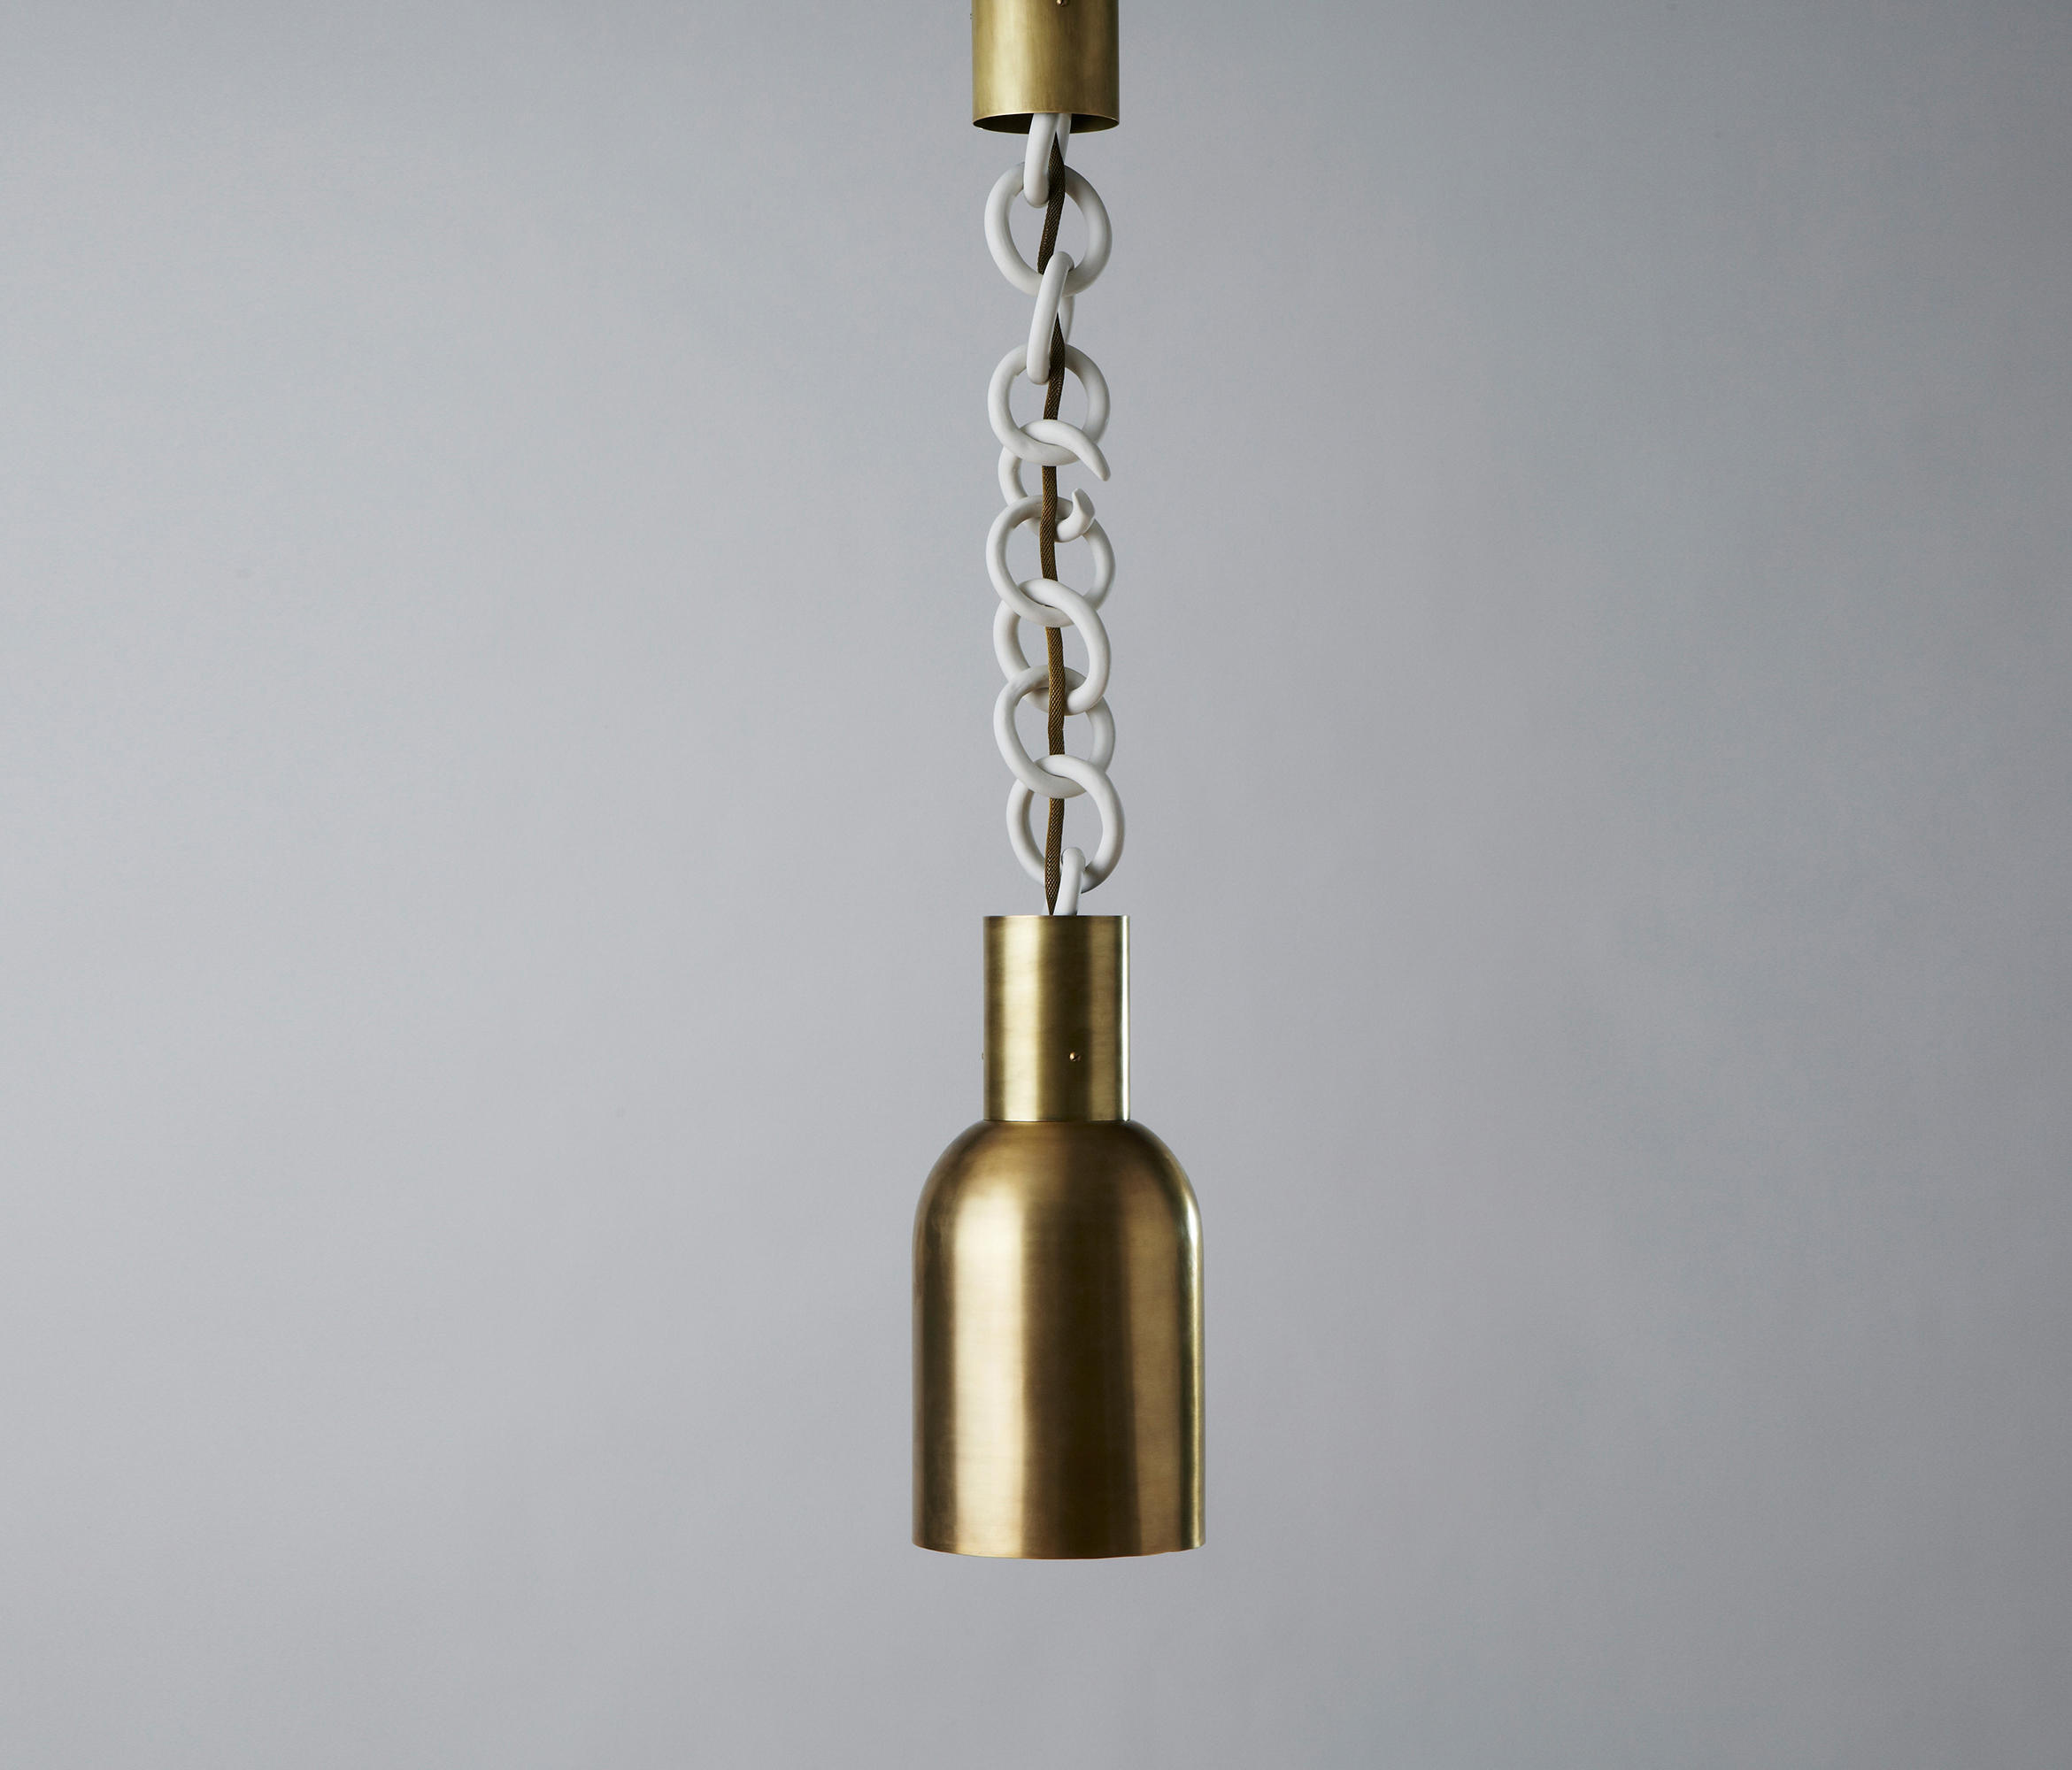 porcelain lighting. link porcelain monolight by apparatus general lighting h